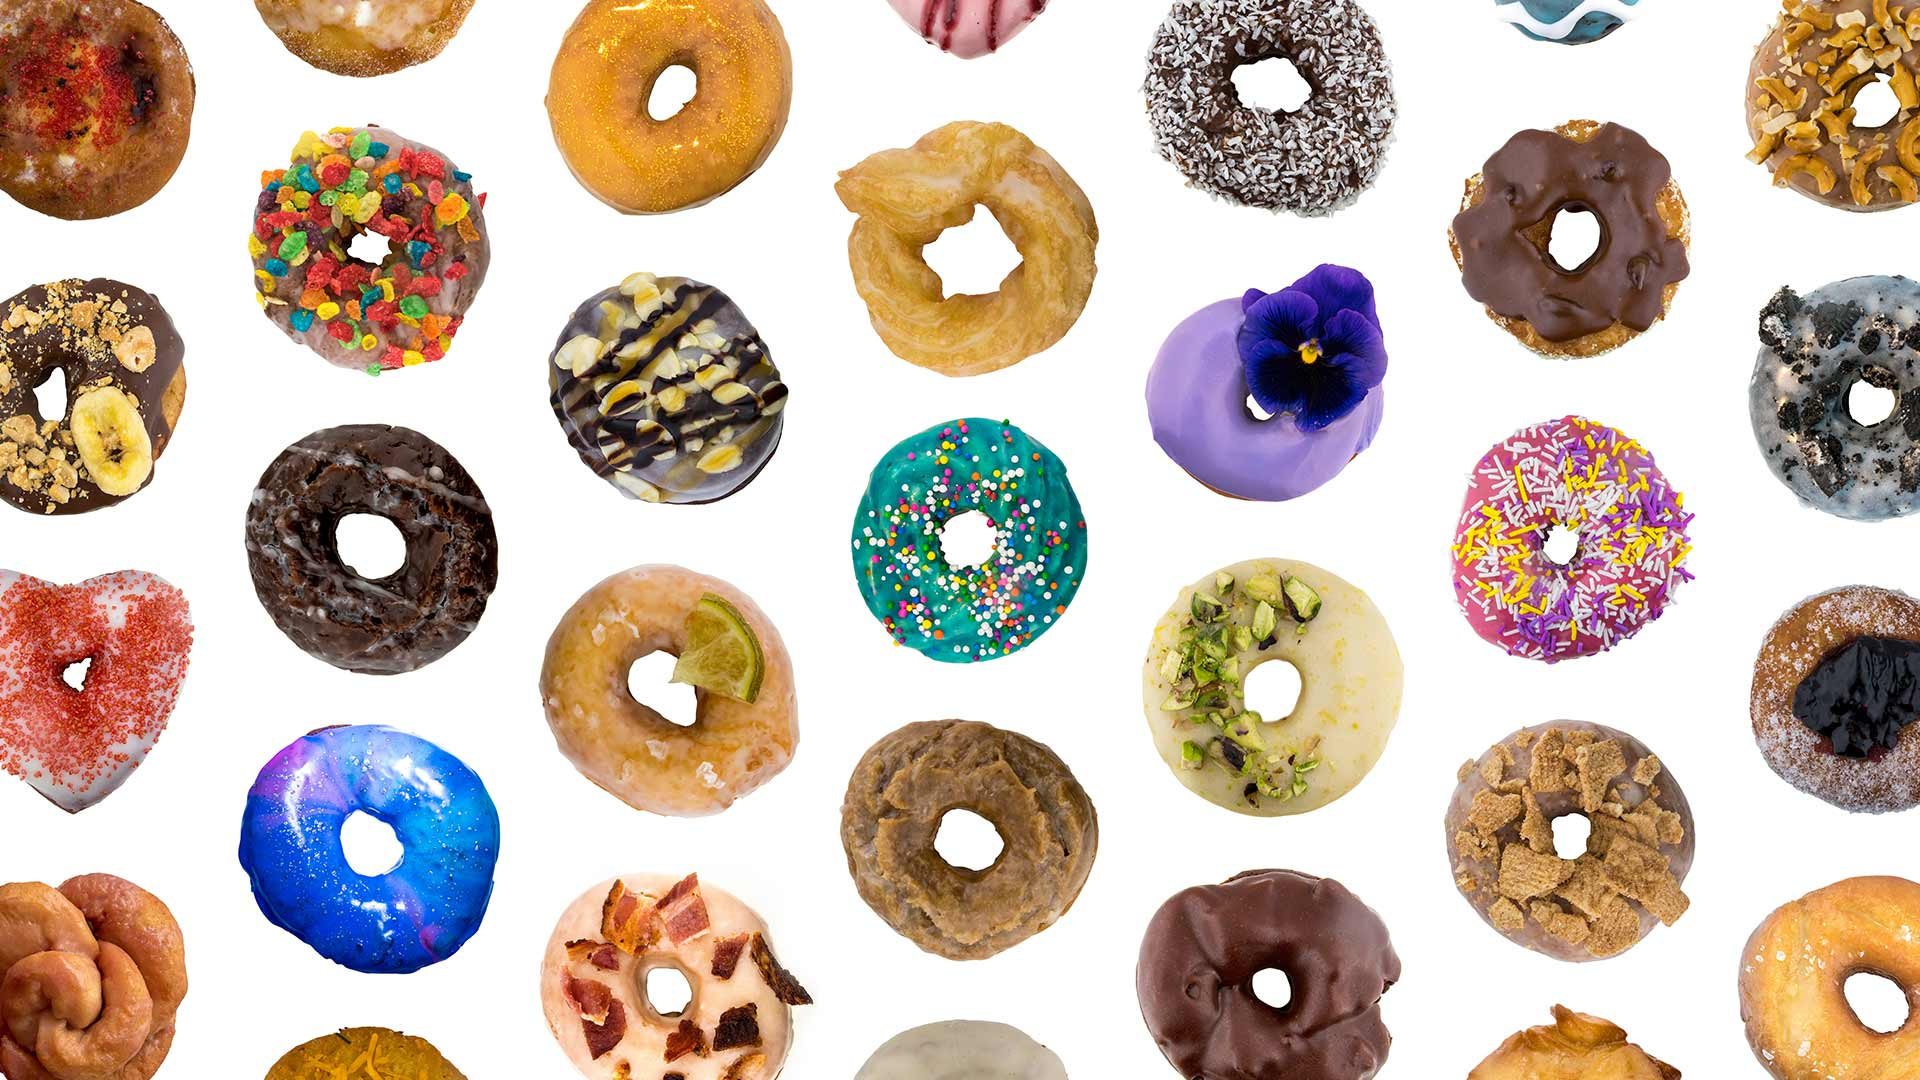 Image of different varieties of donuts